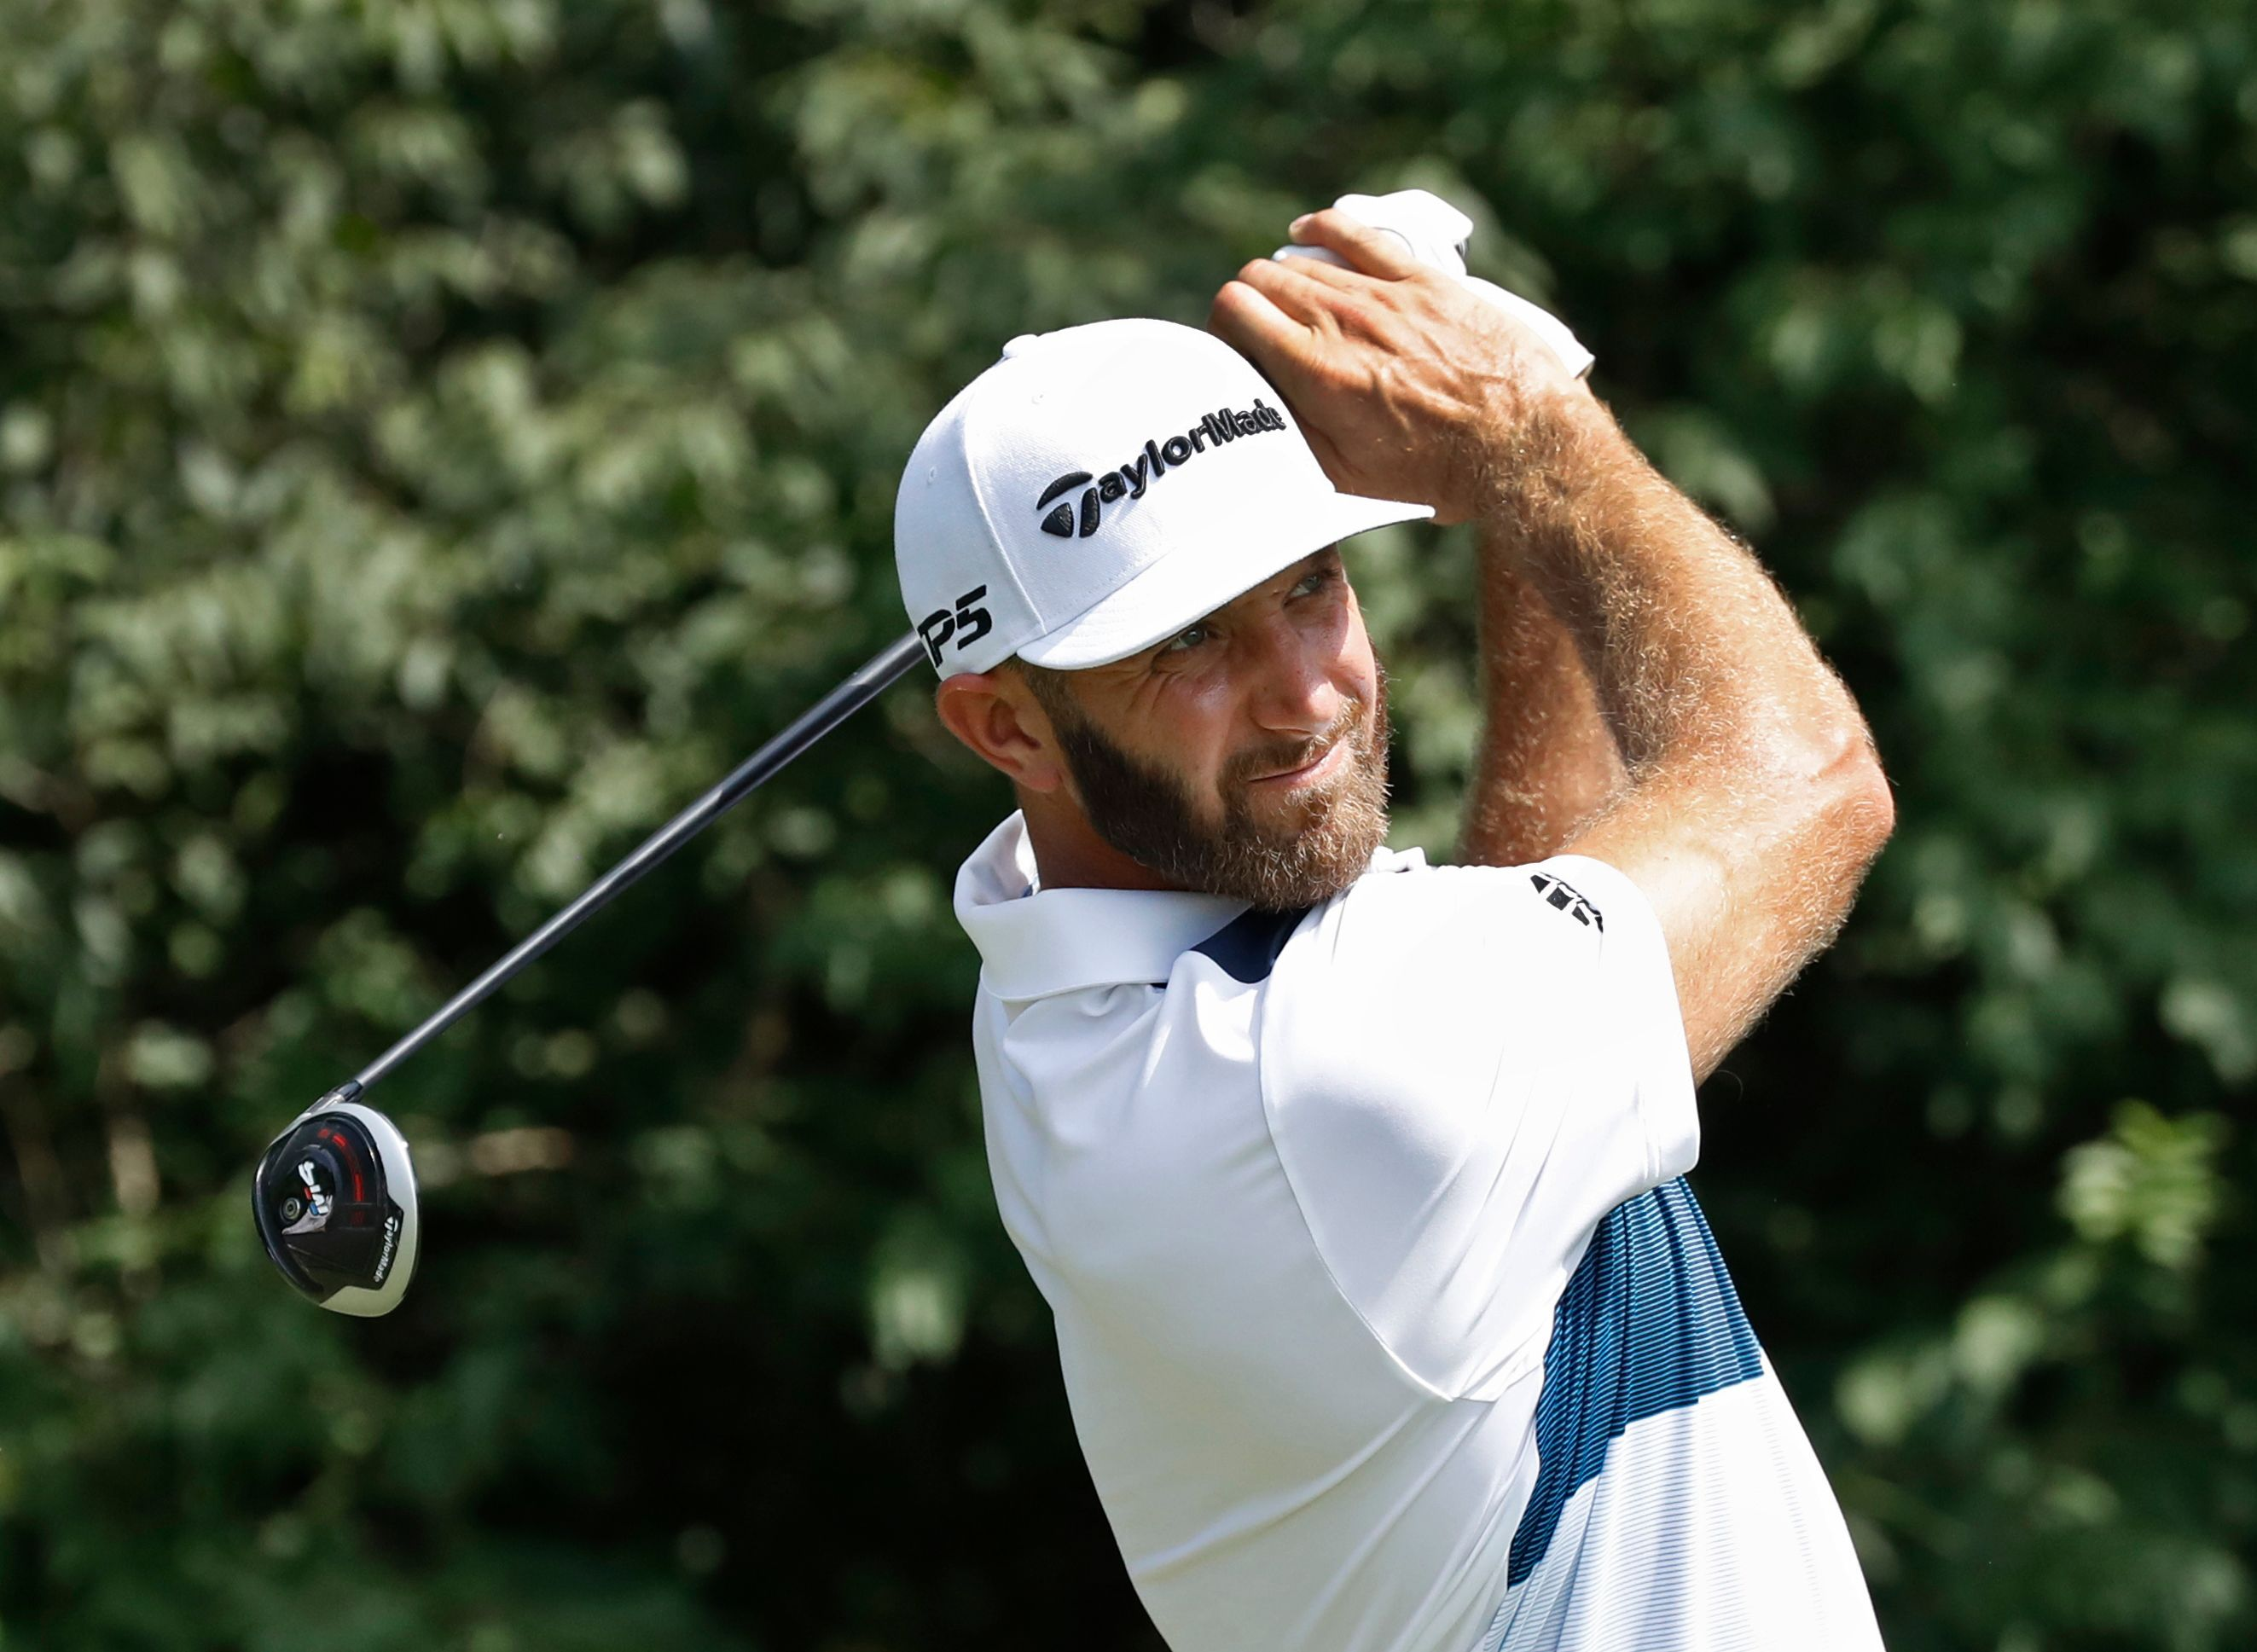 The Latest: Dustin Johnson opens with 67 at PGA Championship